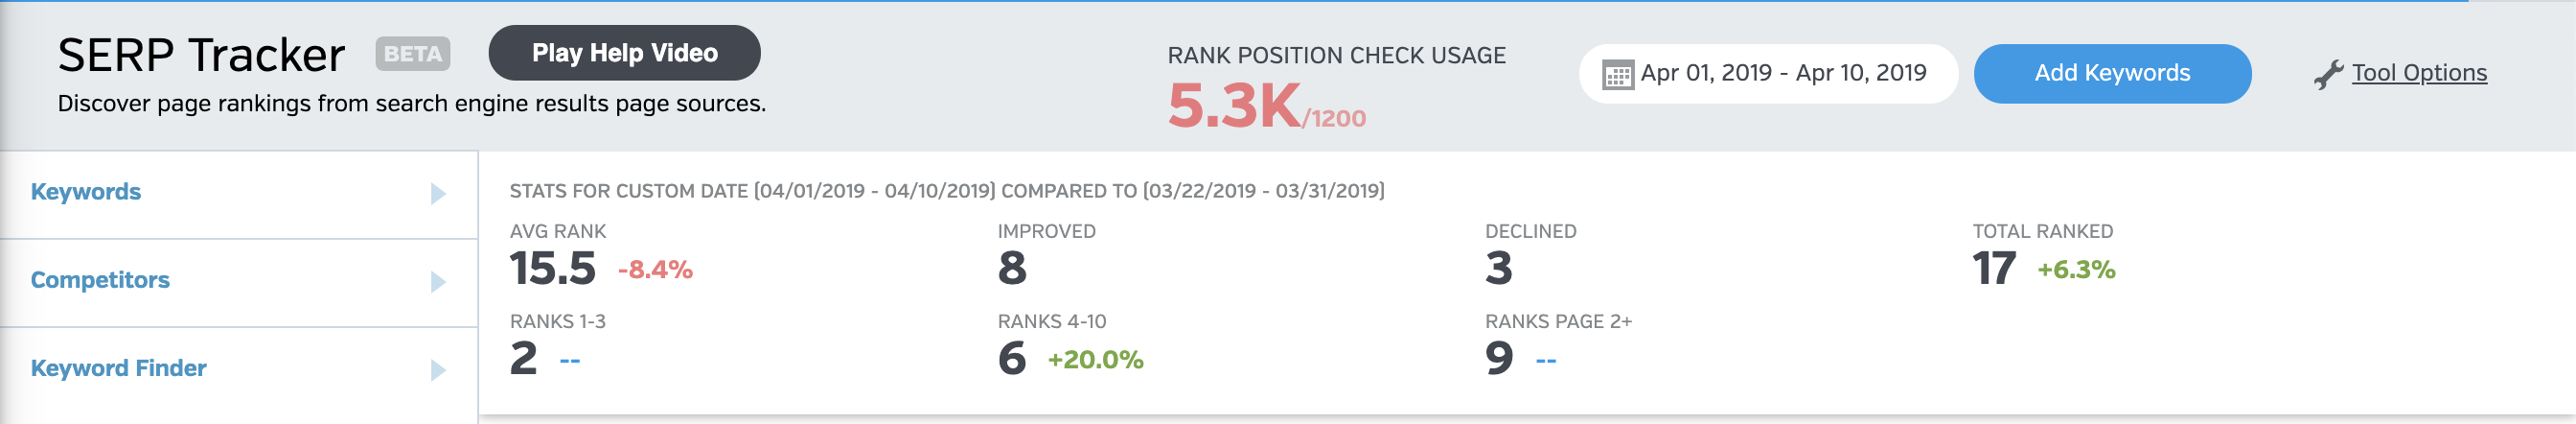 Serp Rank Tracker Menu